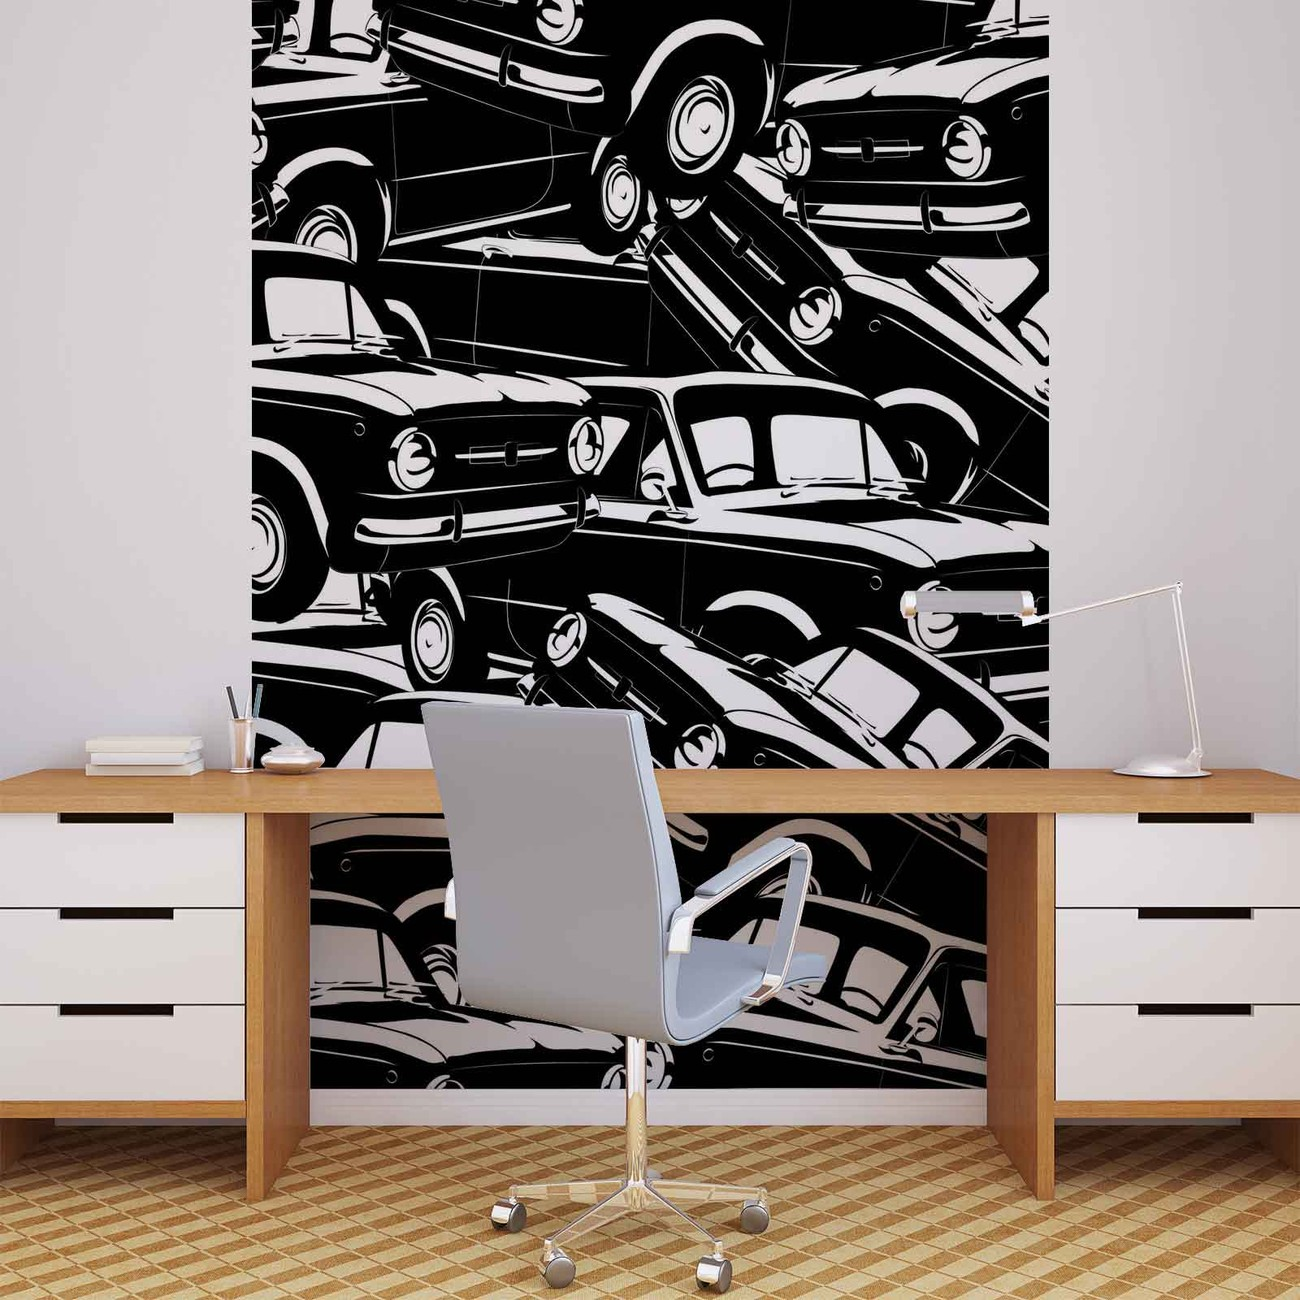 Cars vintage wall paper mural buy at europosters for Cars movie wall mural